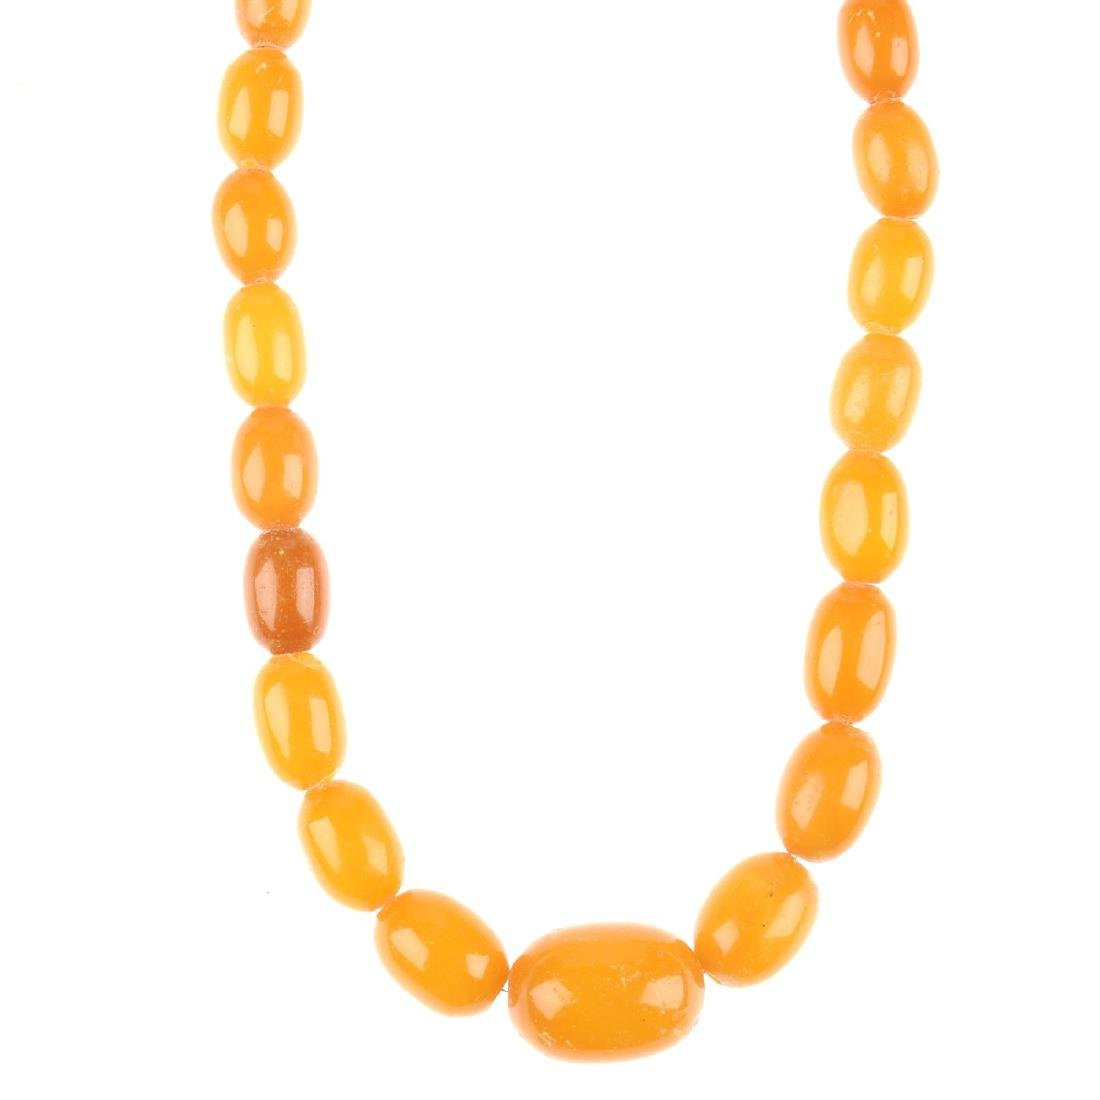 A natural amber bead necklace. Designed as graduated